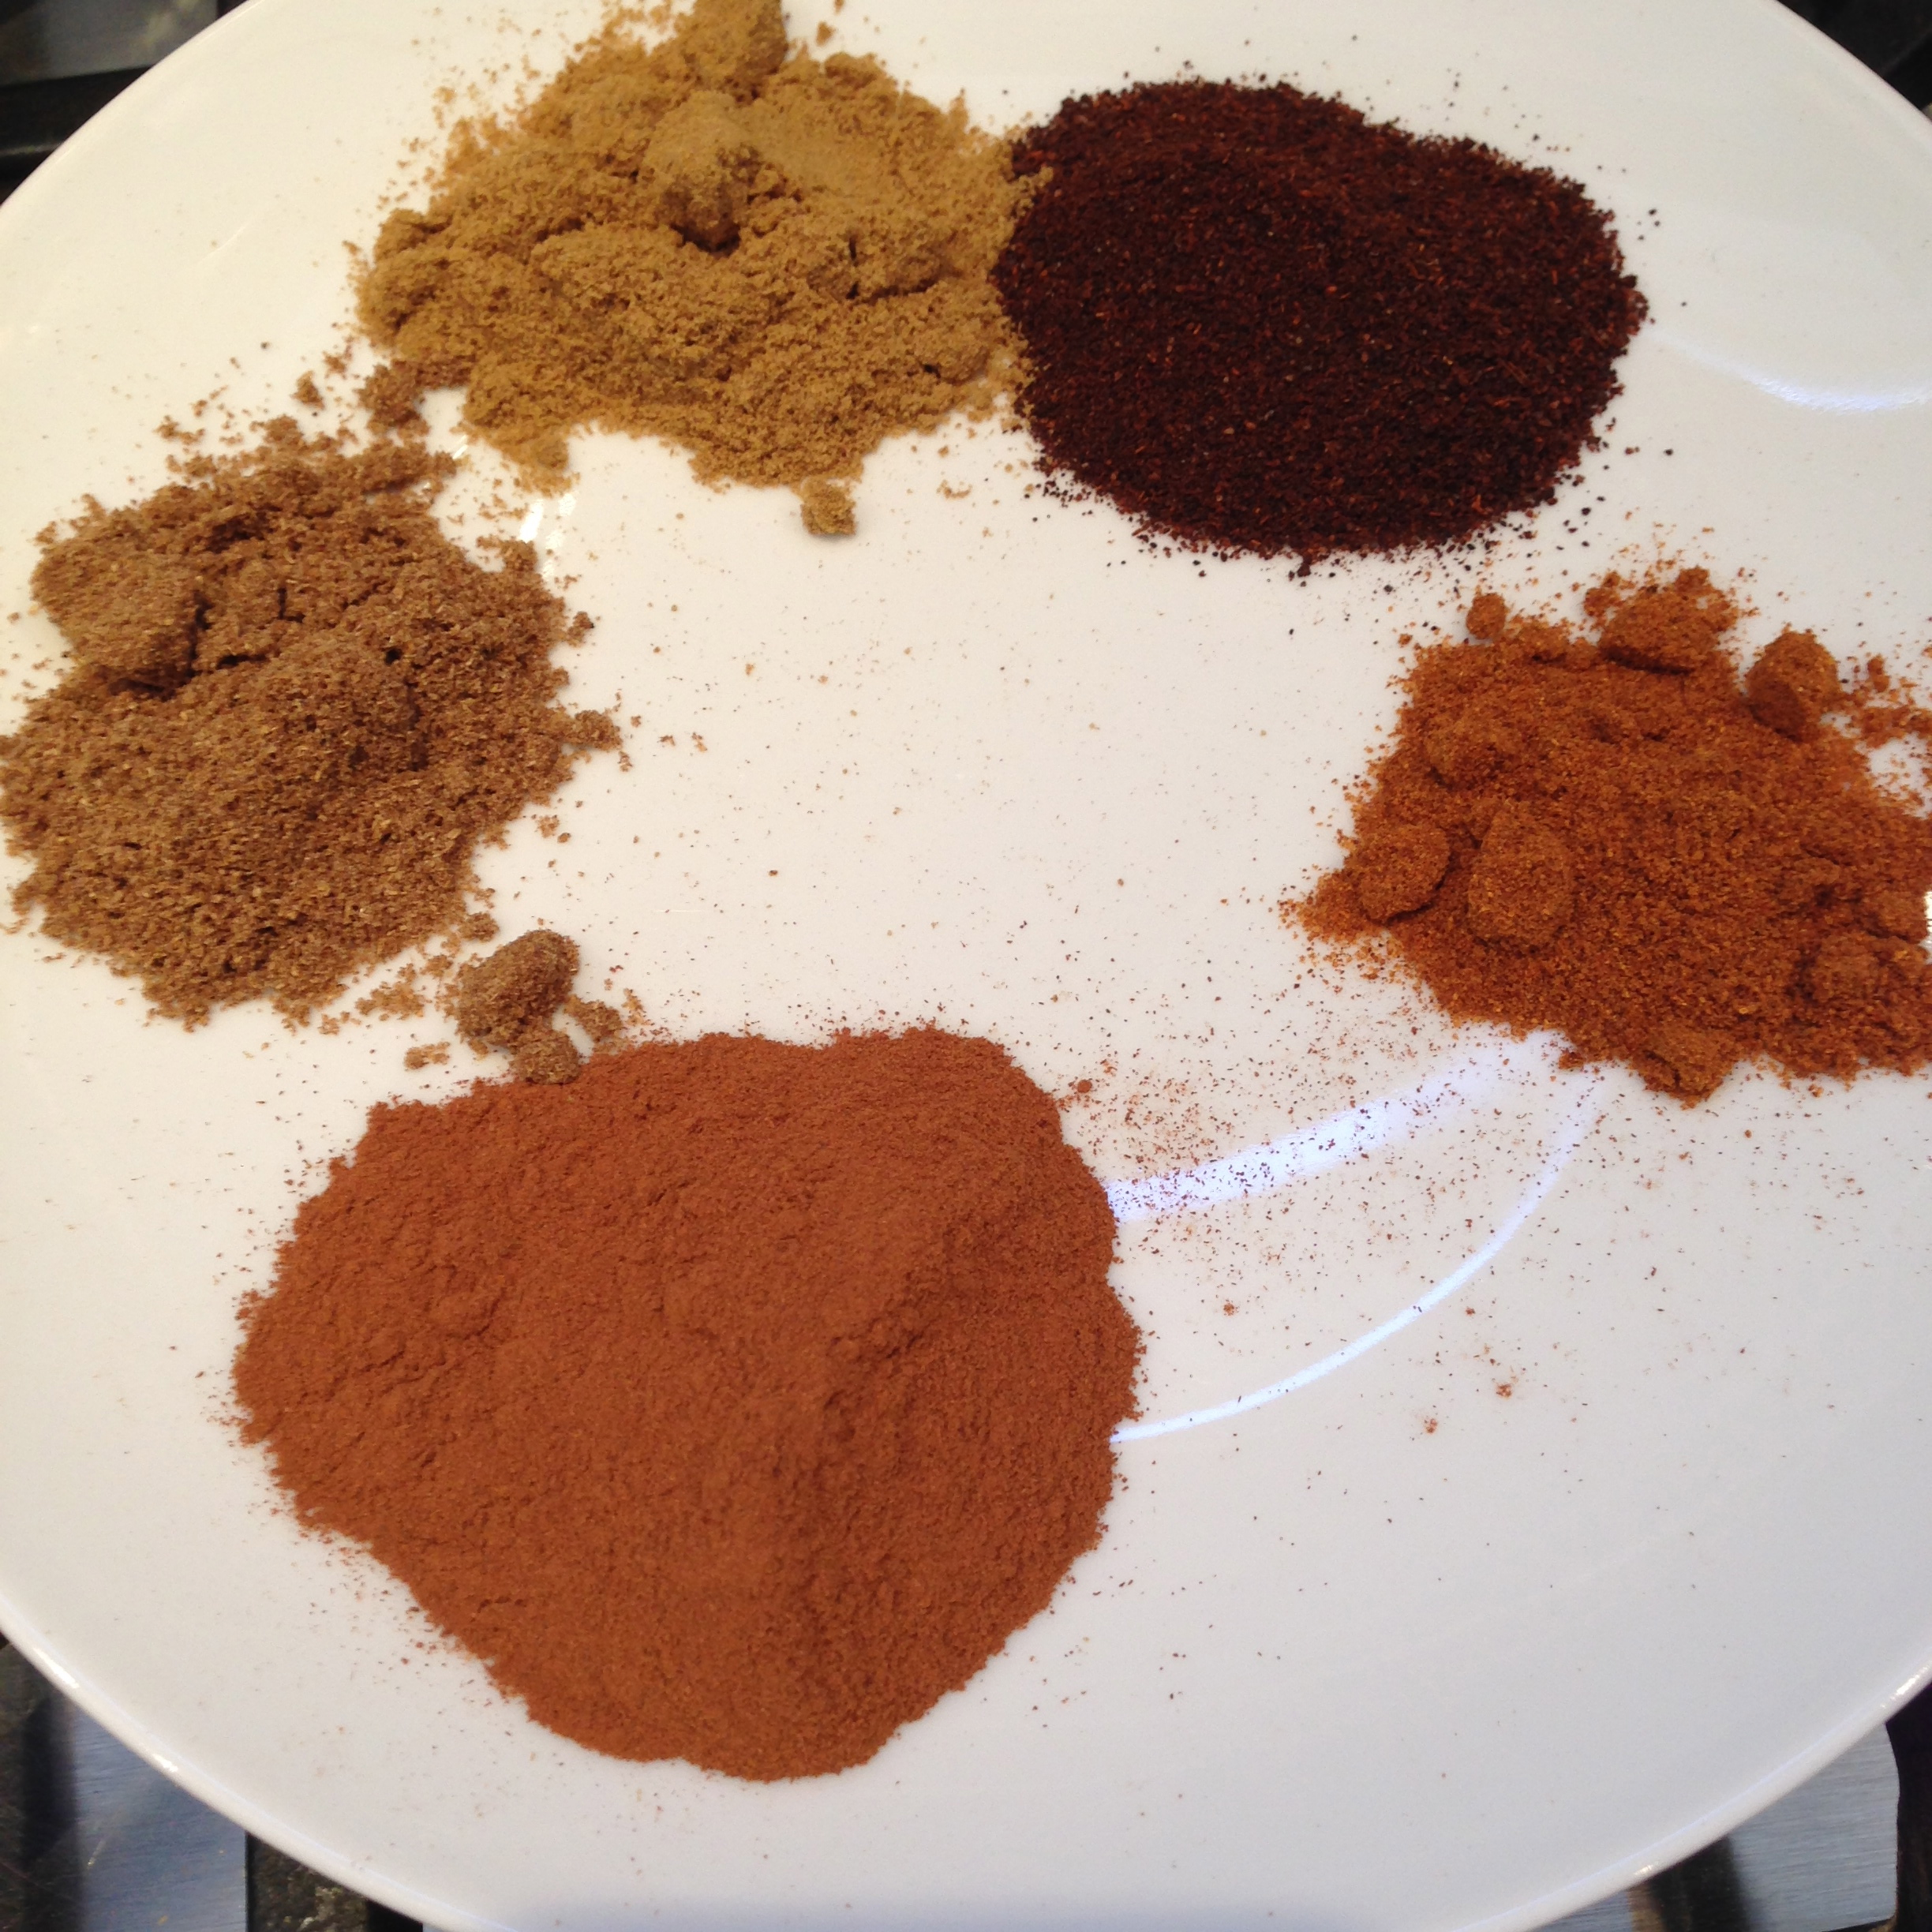 Clockwise: chili powder, cayenne, cinnamon, ground coriander and cumin.